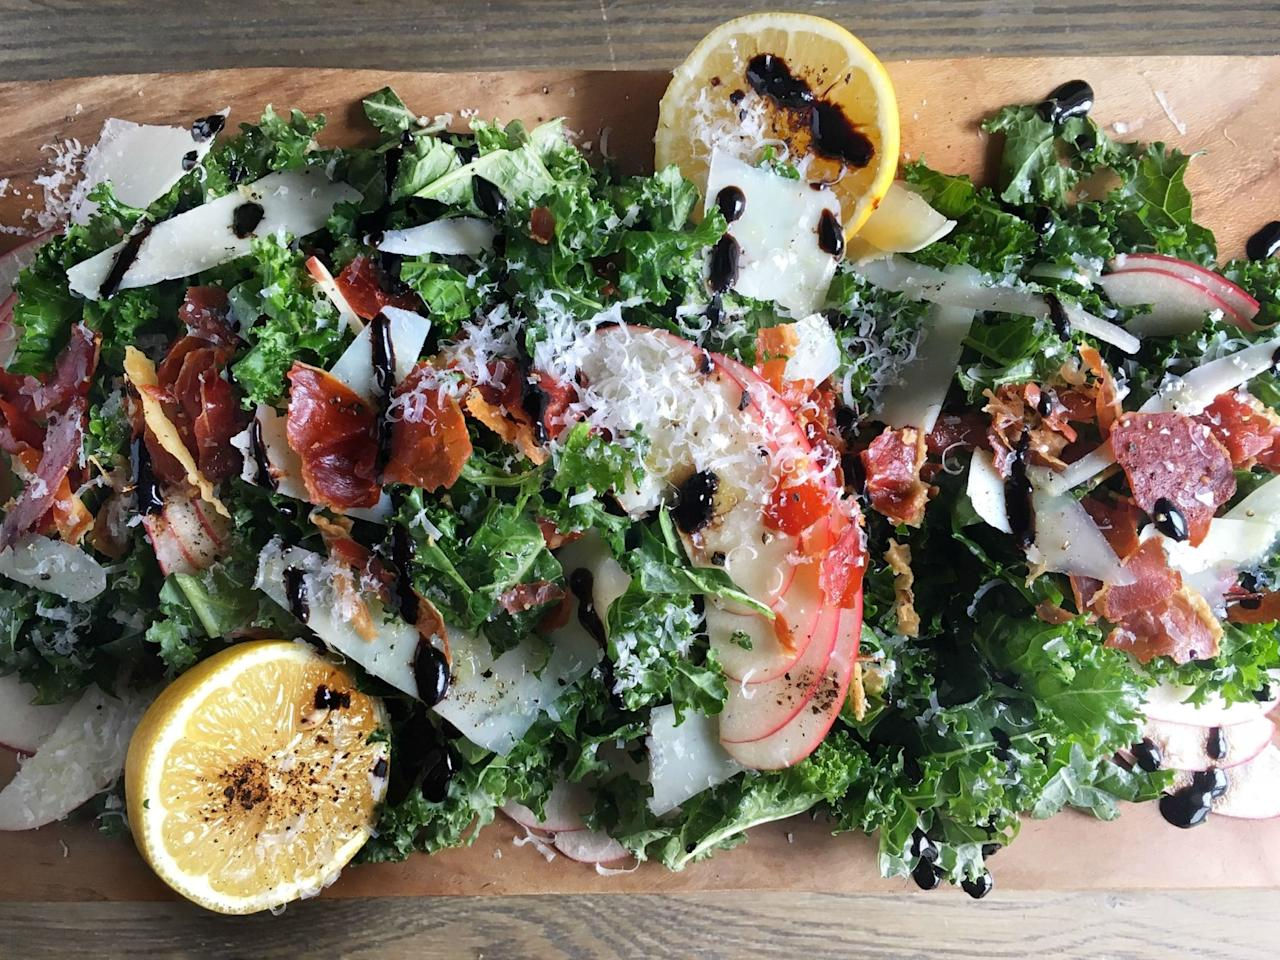 """<p>Can we always top our salads with meat and cheese, please?</p><p>Get the recipe from <a rel=""""nofollow"""" href=""""http://www.delish.com/cooking/recipe-ideas/recipes/a46518/kale-apple-pecorino-salad-with-crispy-prosciutto-and-balsamic-drizzle-recipe/"""">Delish</a>.</p><p><strong><em>ADD SOME FLAVOR: </em></strong><span><strong><em>Le Creuset Pepper Mill, $43; </em></strong><strong><em><a rel=""""nofollow"""" href=""""https://www.amazon.com/Creuset-Ink-Inch-Pepper-Mill/dp/B01NCU7F4R/?tag=syndication-20"""">amazon.com</a>.</em></strong></span><span></span><br></p>"""